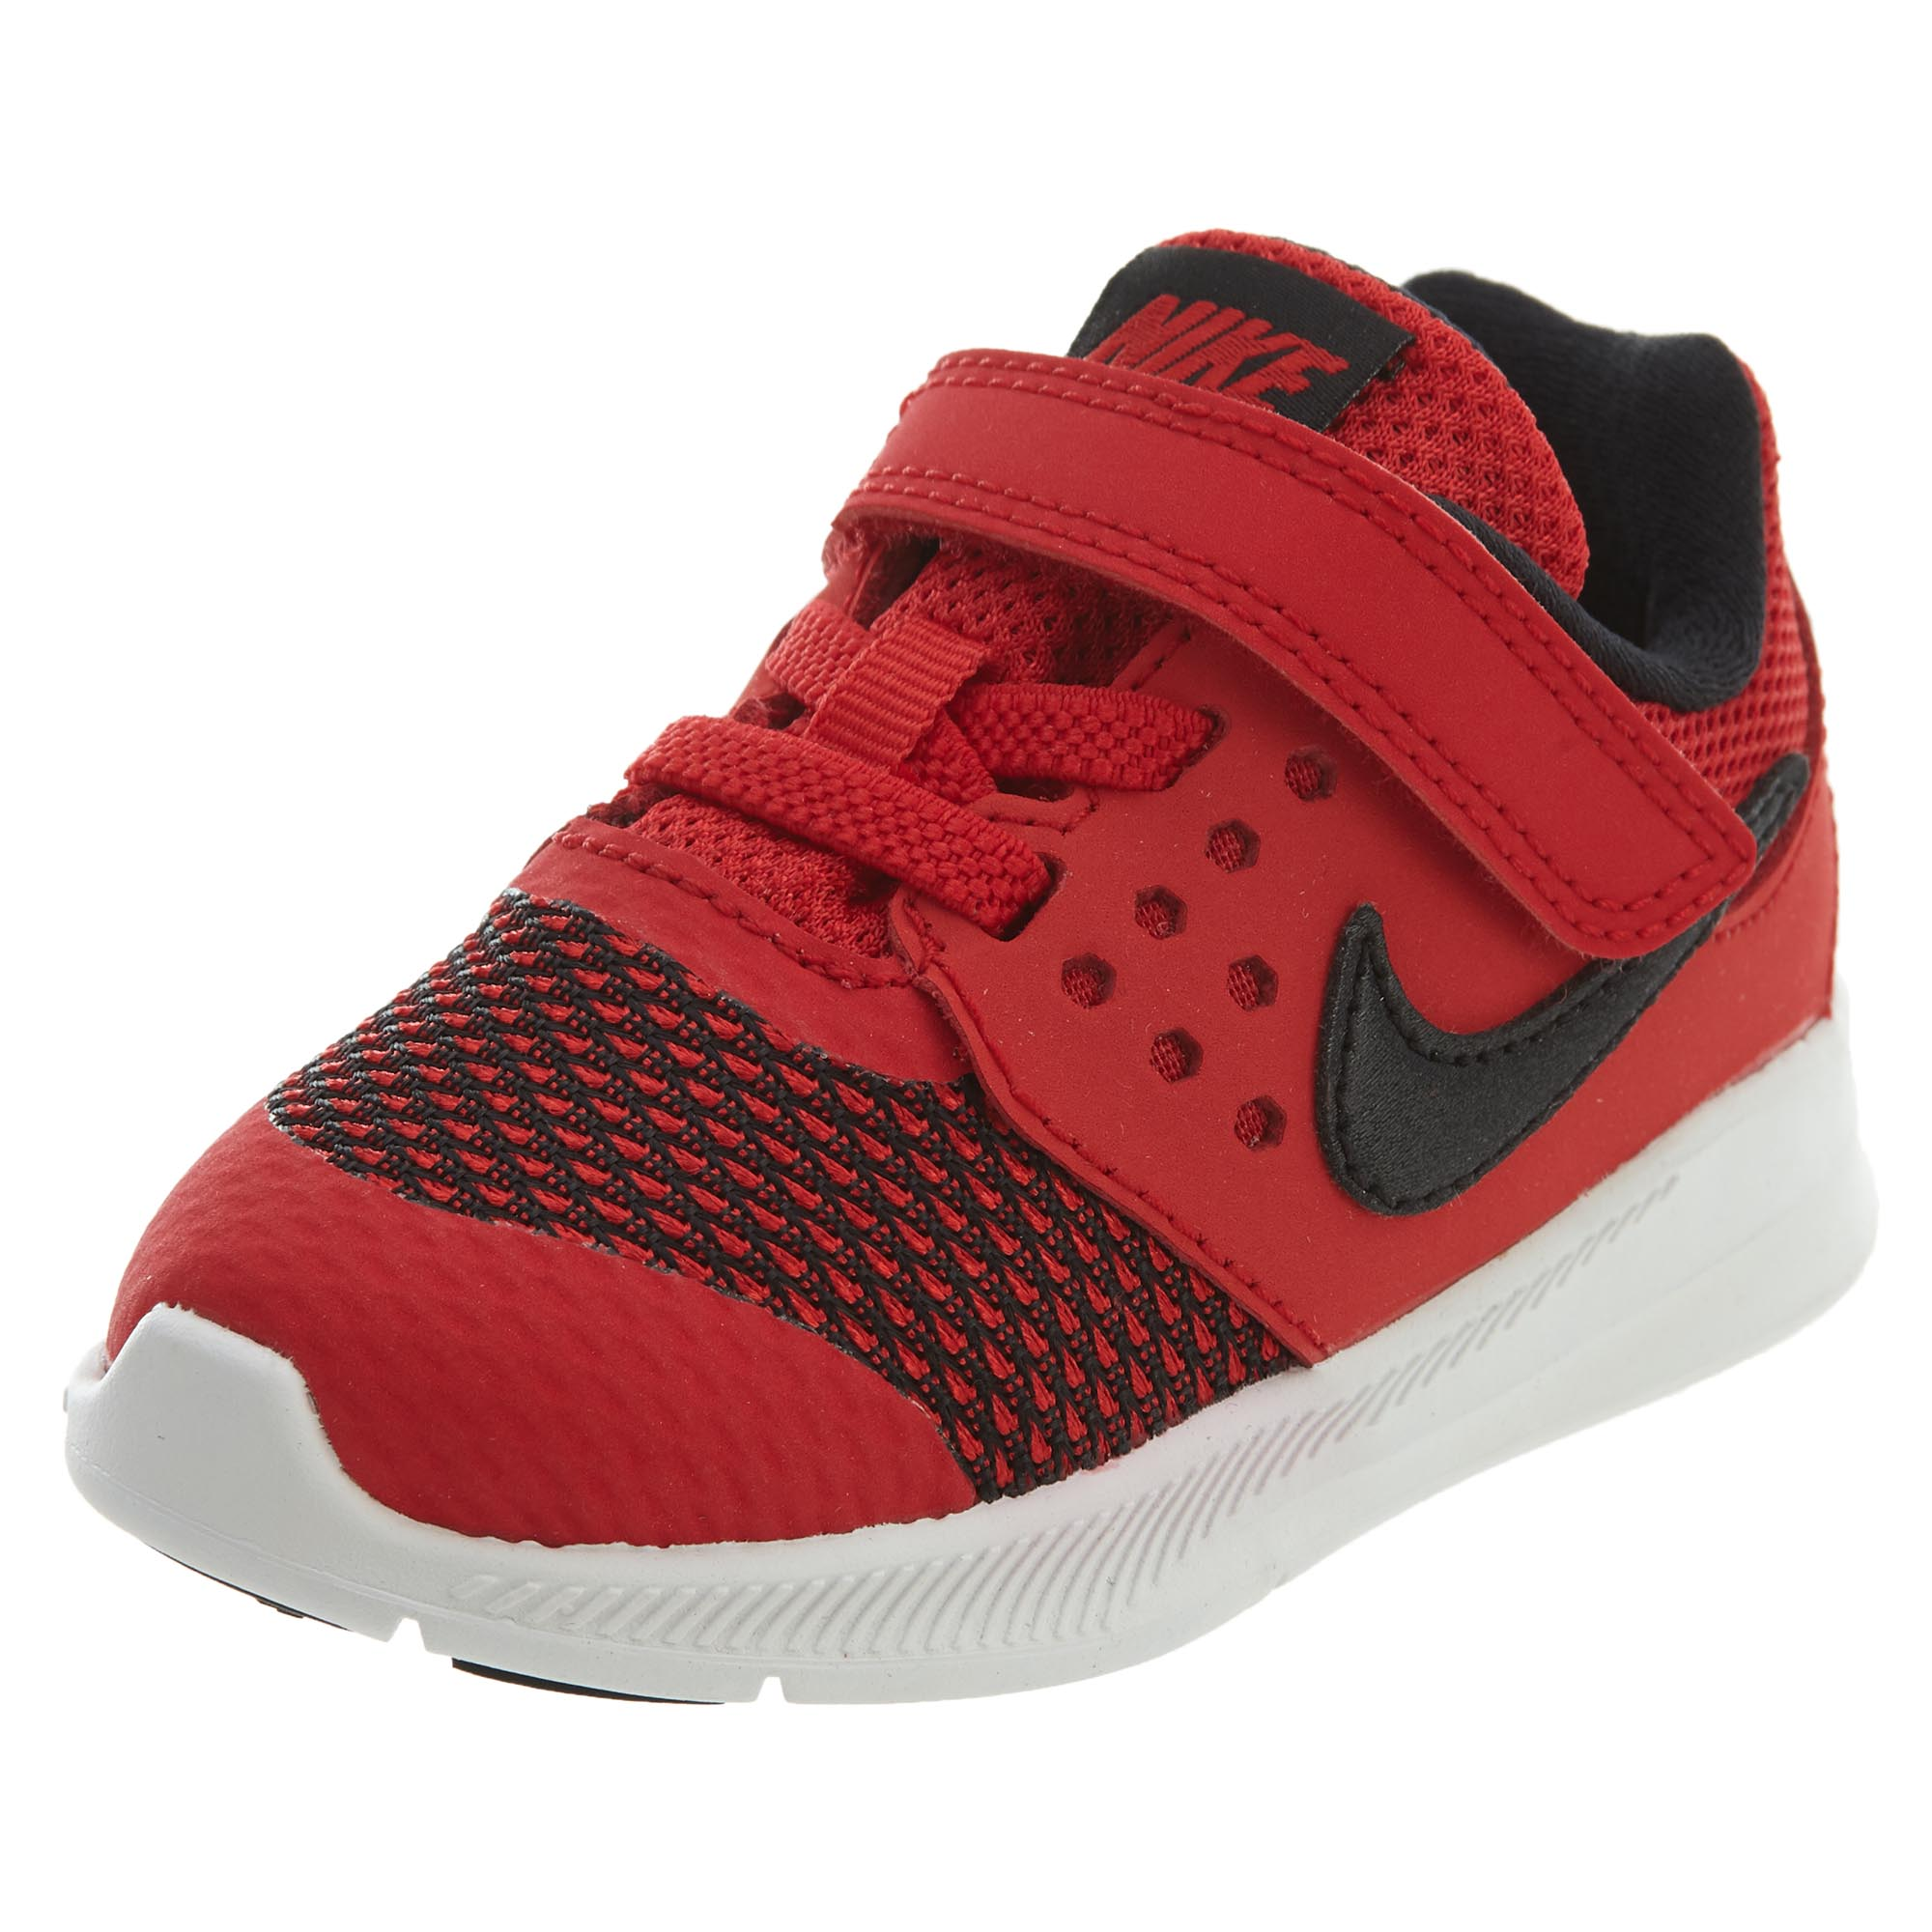 d9e6c92a65ab Details about Nike Toddlers Downshifter 7 Running Shoes 869974-600